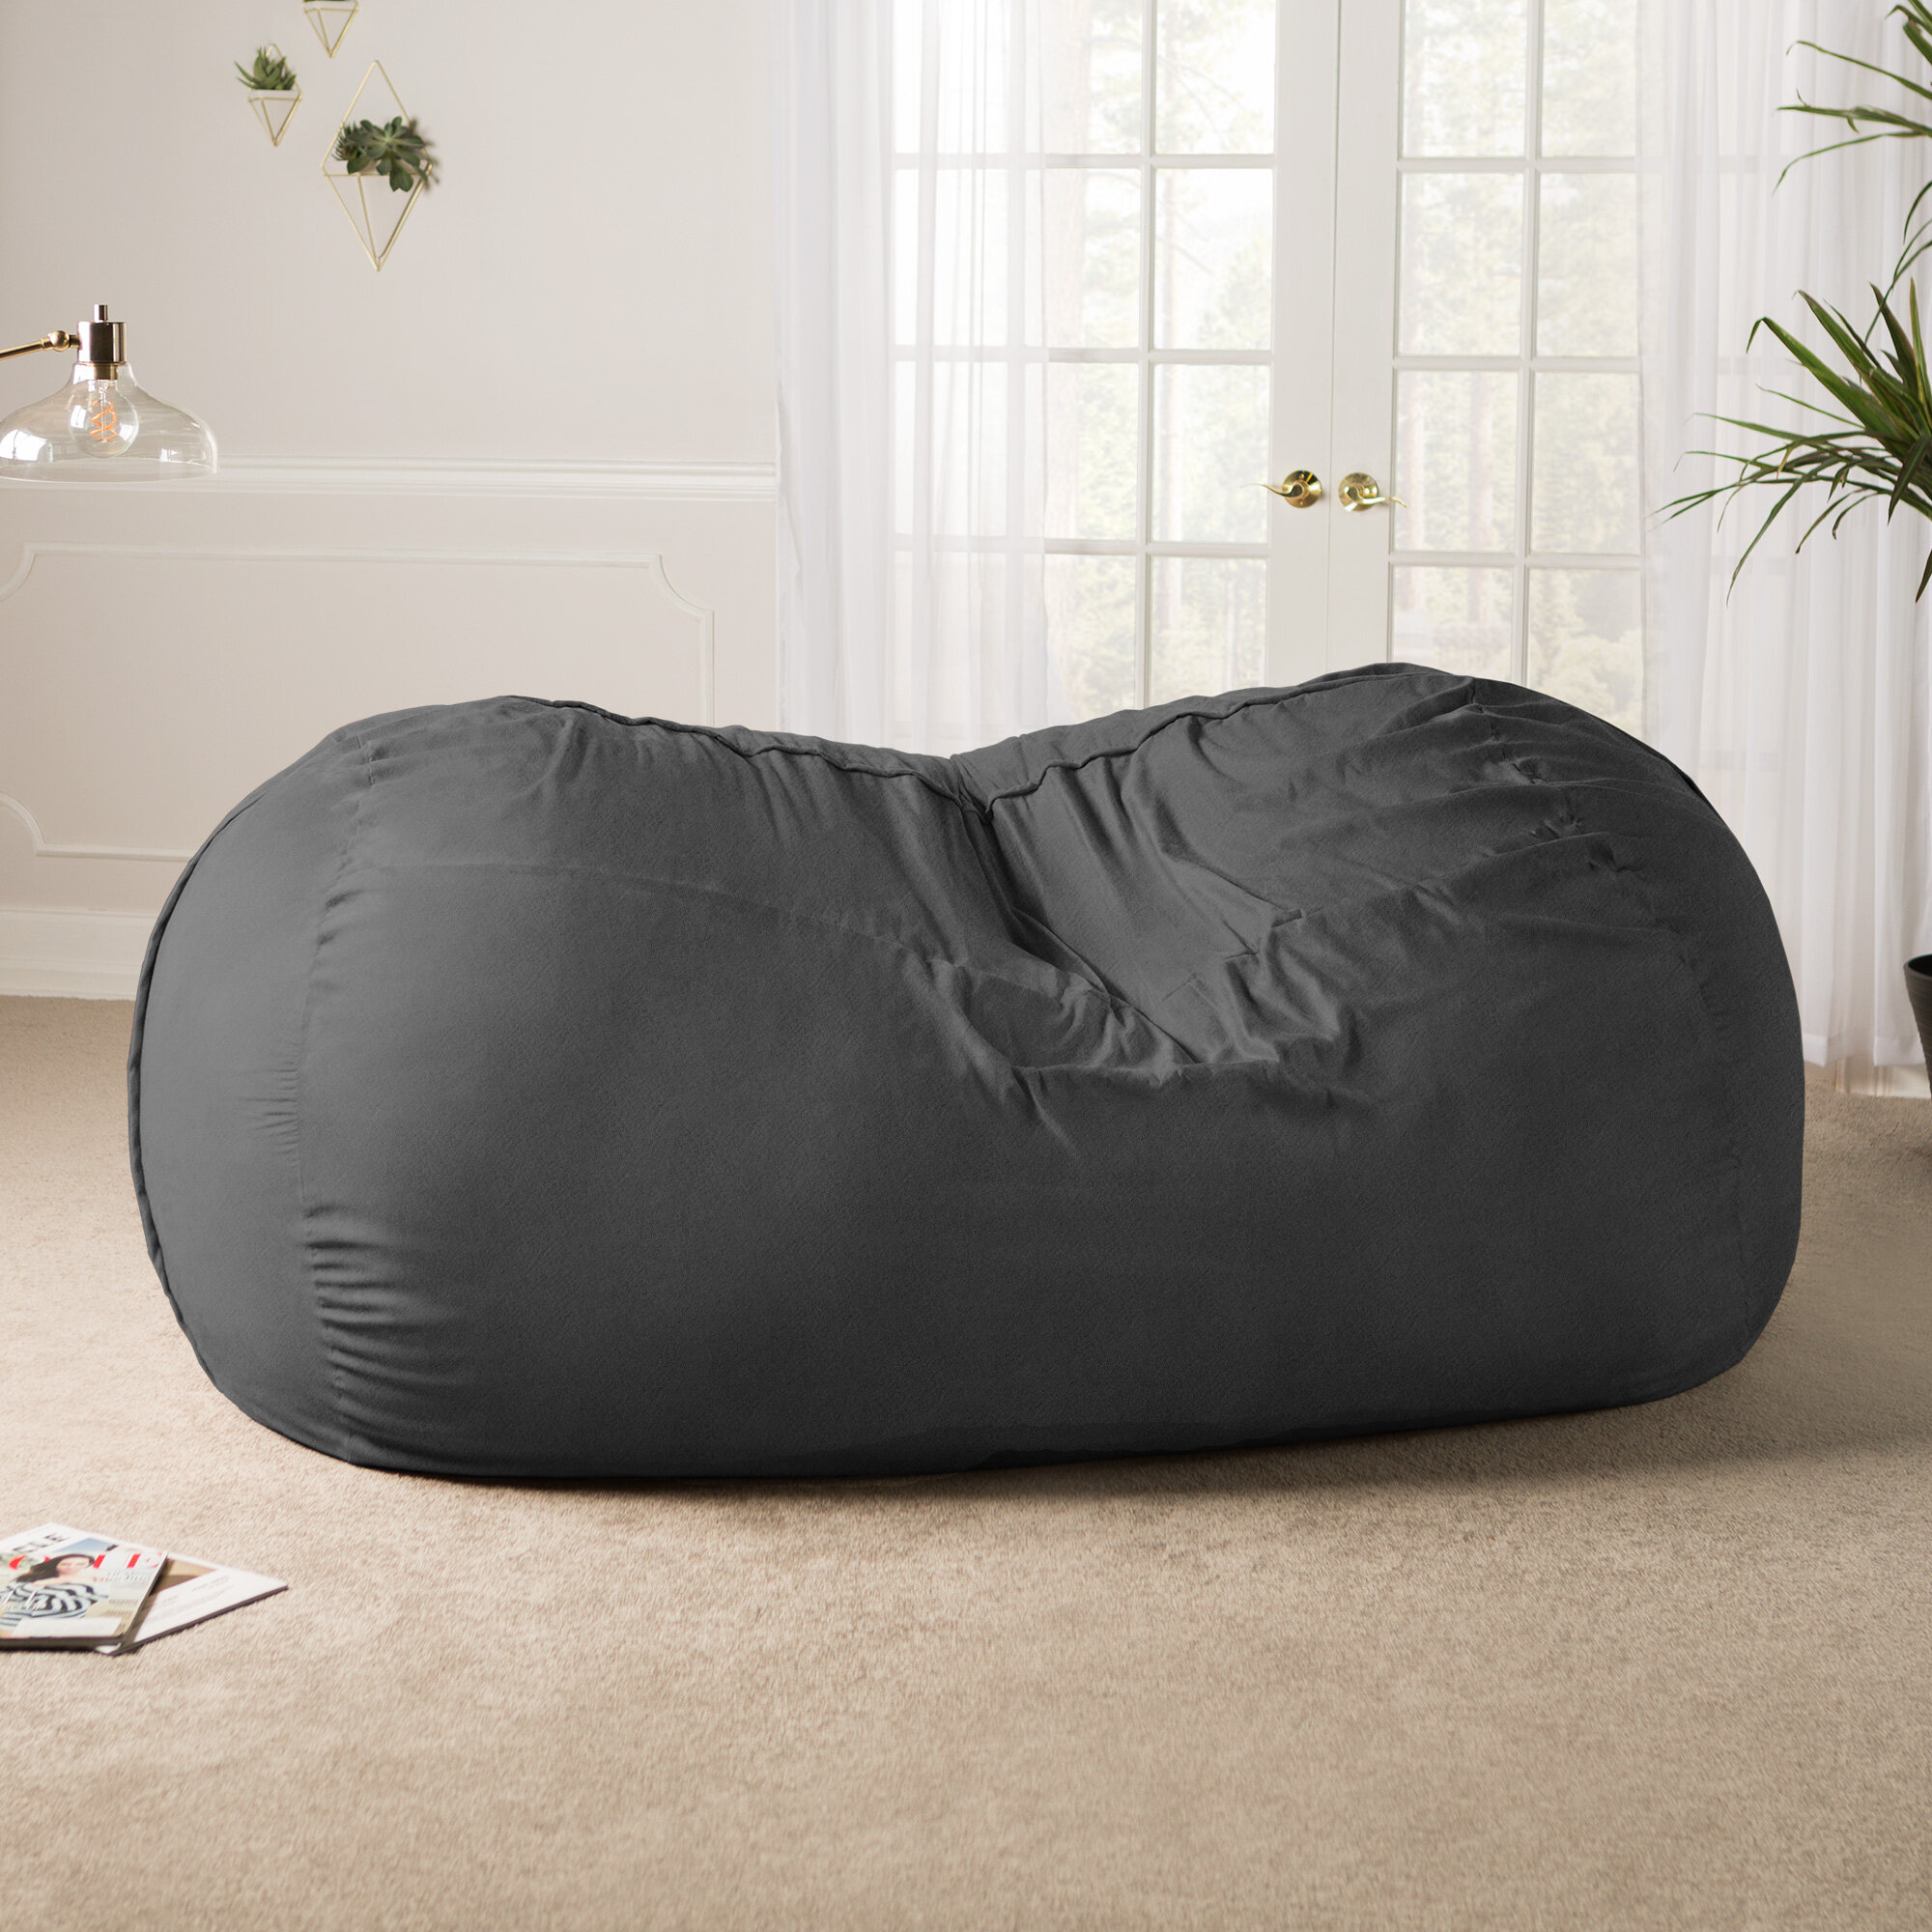 Awe Inspiring Giant Bean Bag Sofa Caraccident5 Cool Chair Designs And Ideas Caraccident5Info